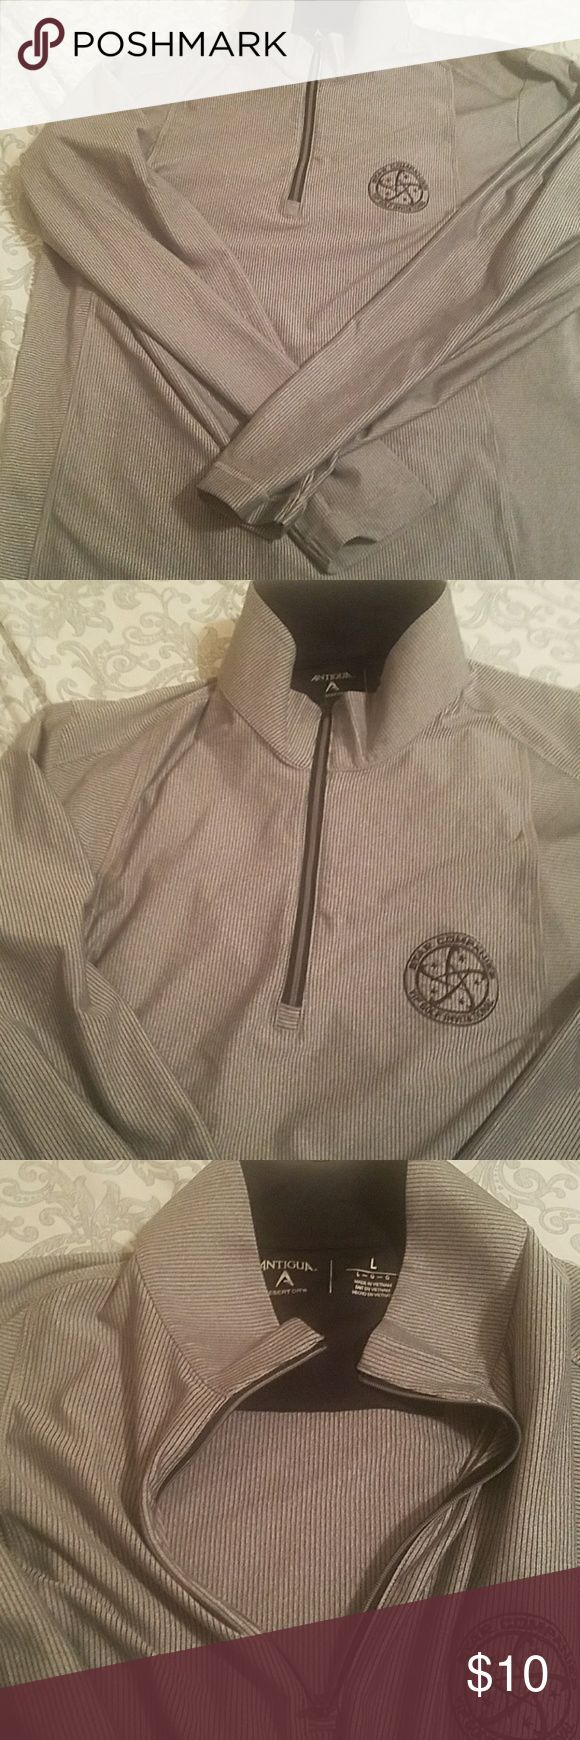 "GOLF SHIRT LIKE NEW Men's Gold Shirt, Antigua brand, size L, half zip, logo states ""Star Companies VIP International"", excellent condition, accepting all reasonable offers, bundle for discounts Antiqua Shirts Polos"